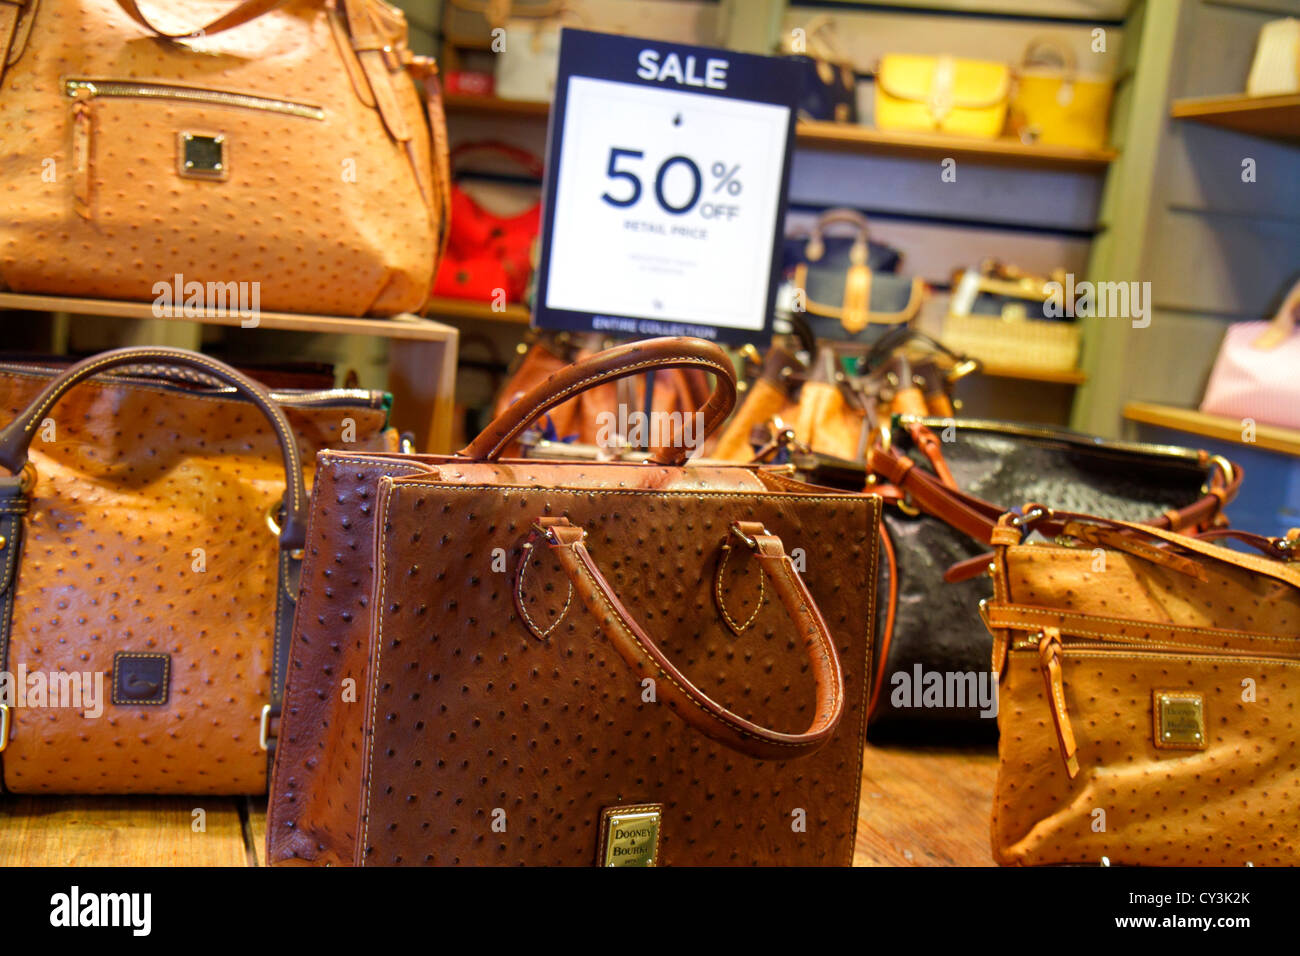 Maine Freeport outlet factory stores Dooney & and Bourke women's handbags leather goods retail display for - Stock Image